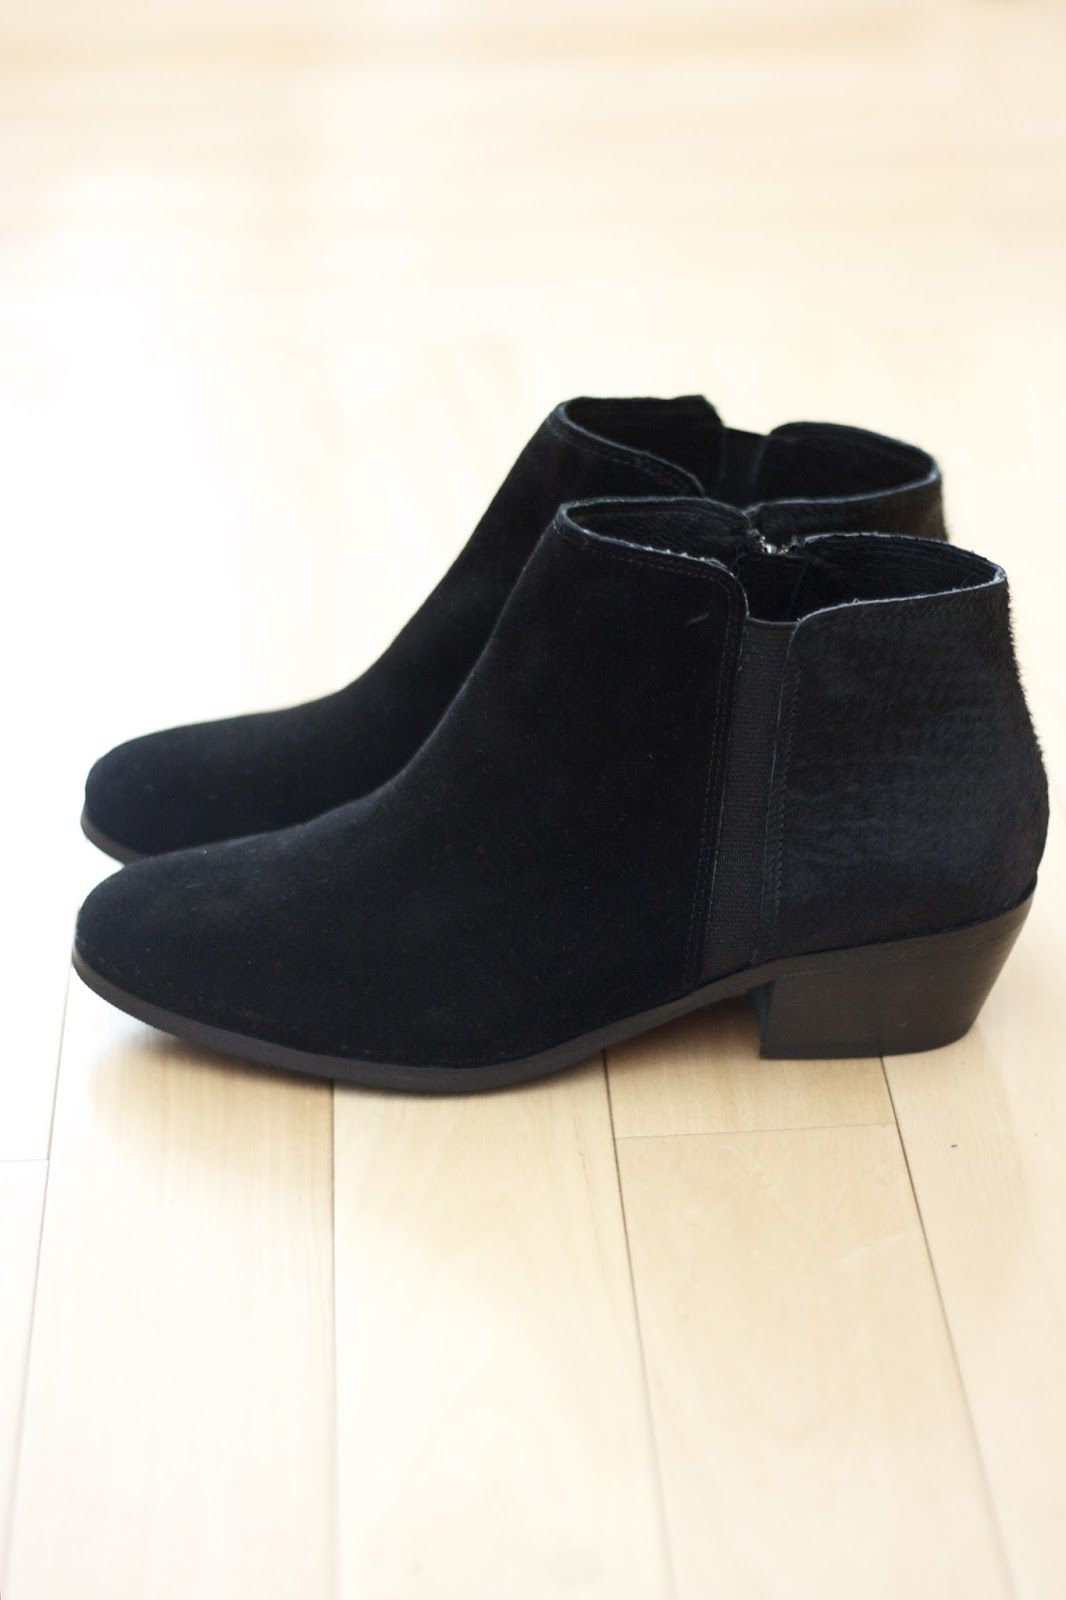 Aldo ankle booties | C&C | In My Closet | Pinterest | Ankle